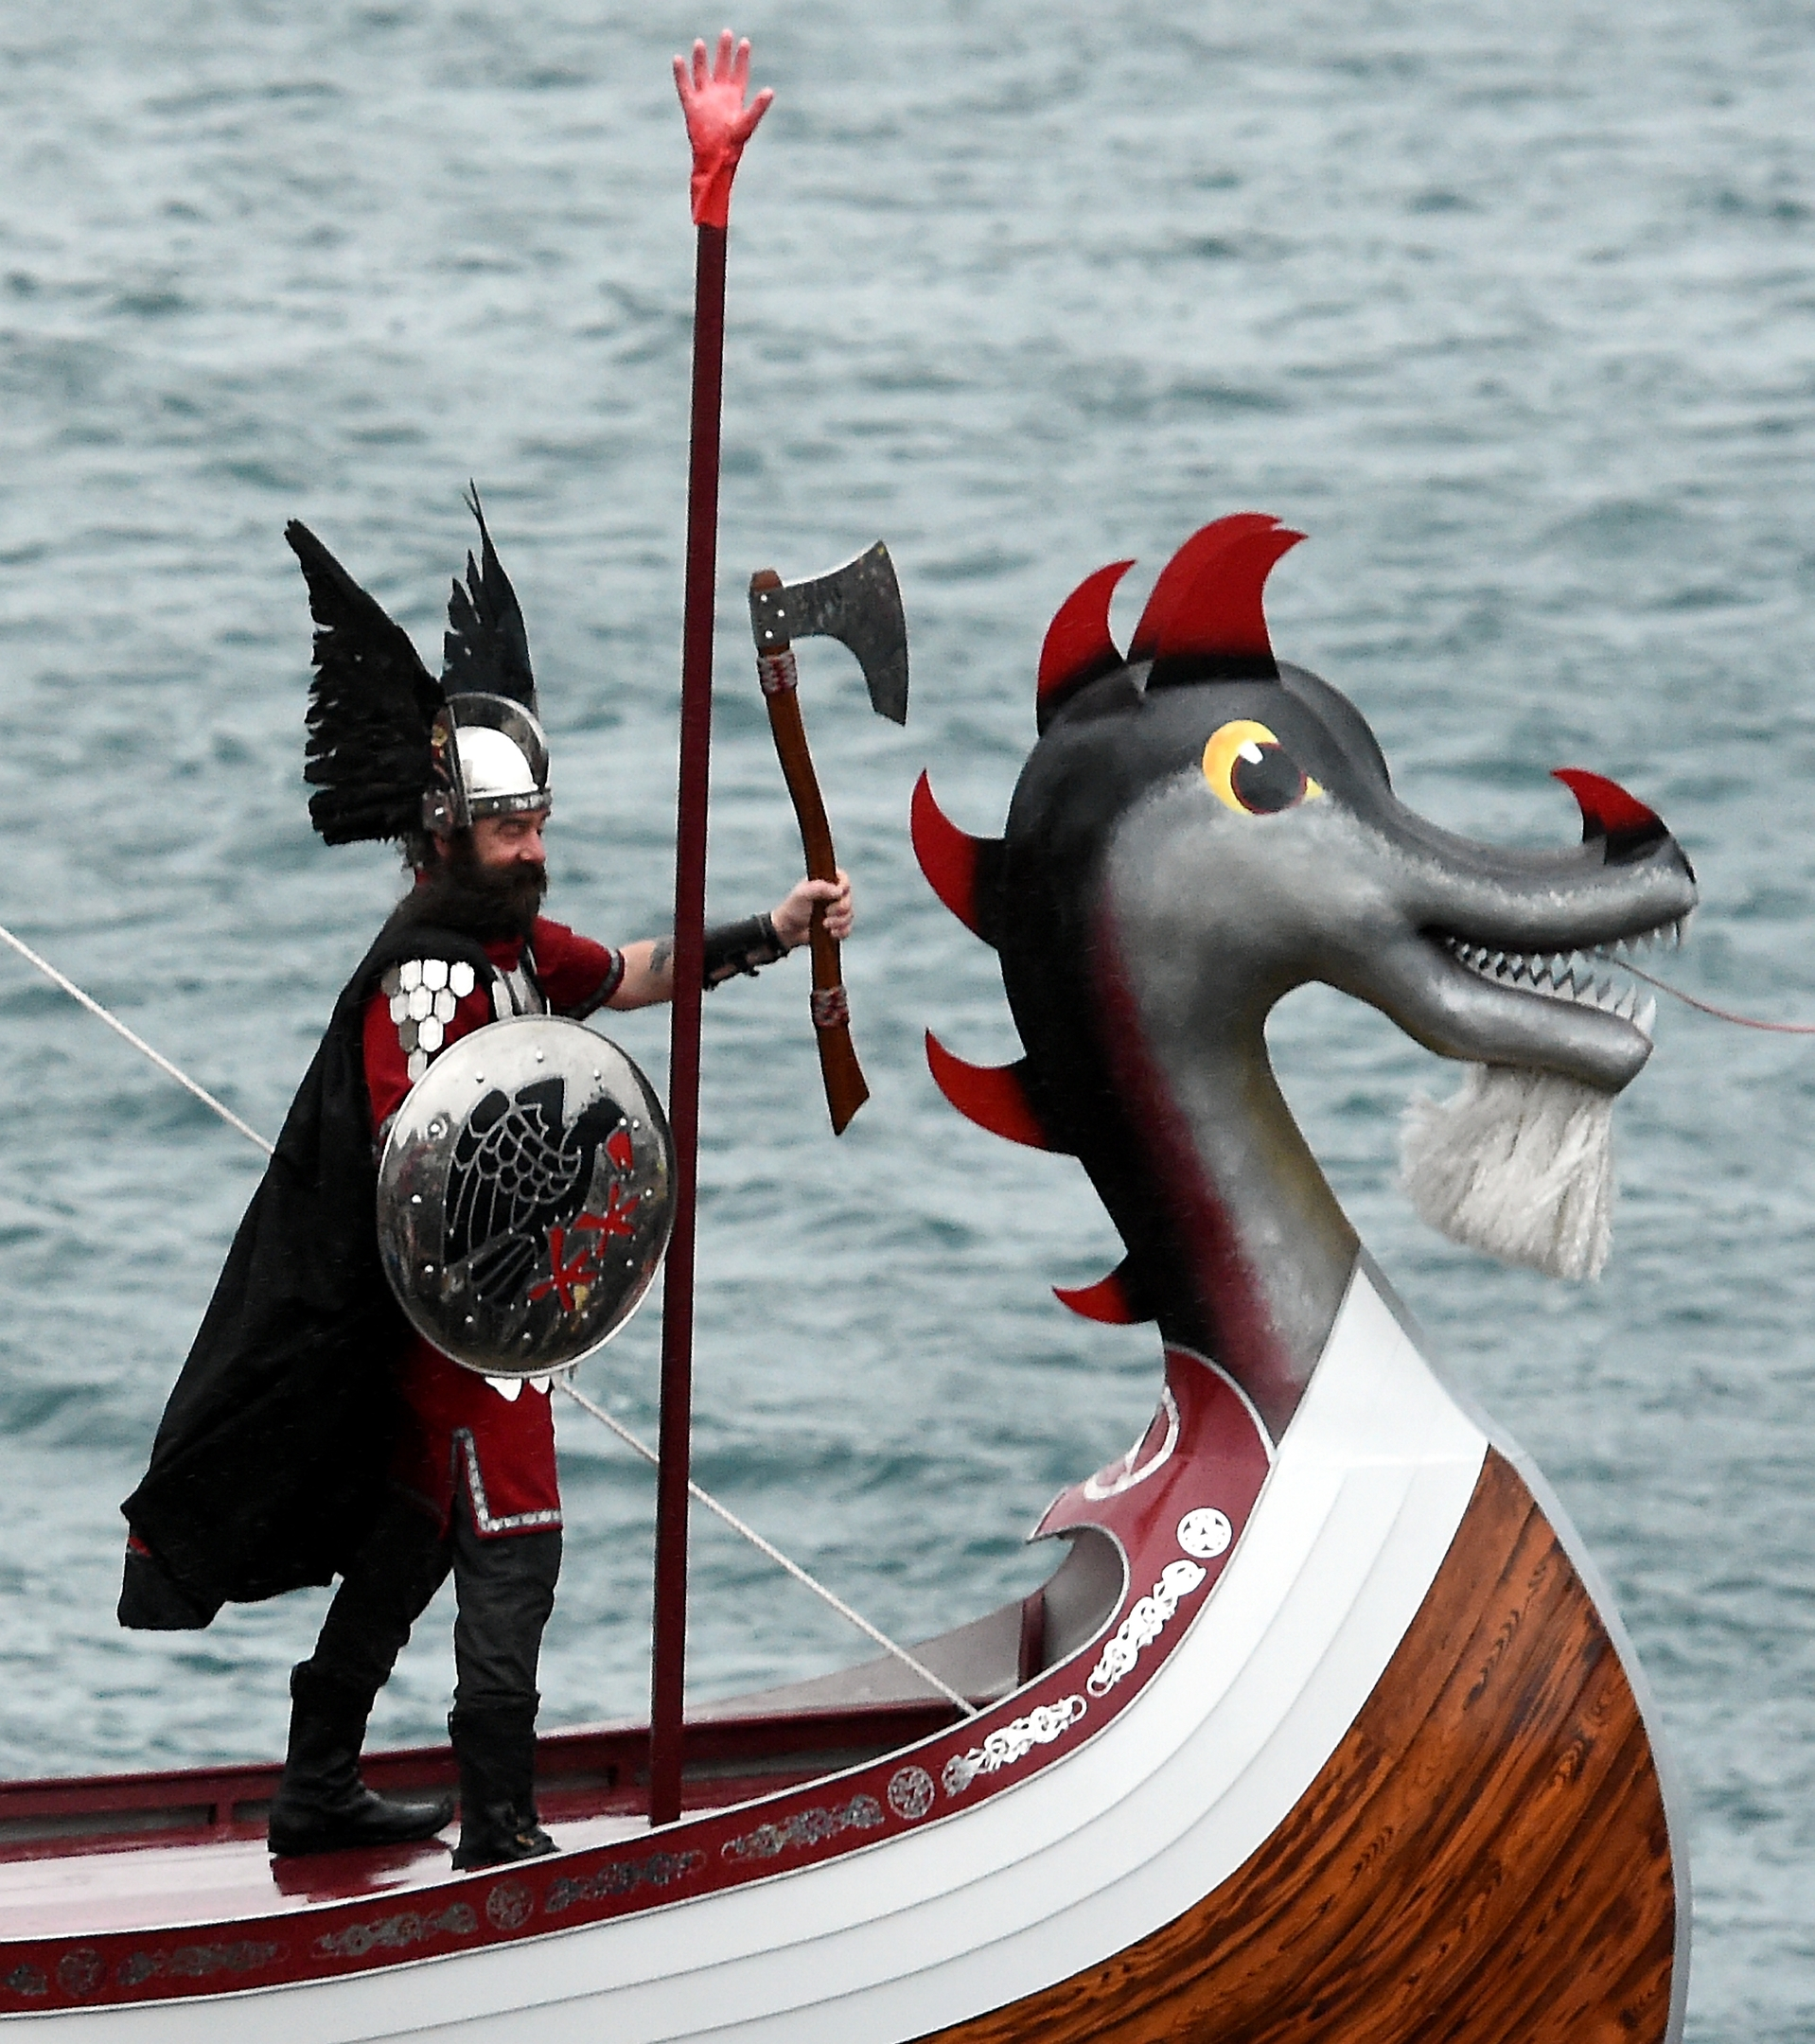 Up Helly Aa, Lerwick, Shetland. The morning march in Lerwick. Guizer Jarl, Mark Evans on the galley.